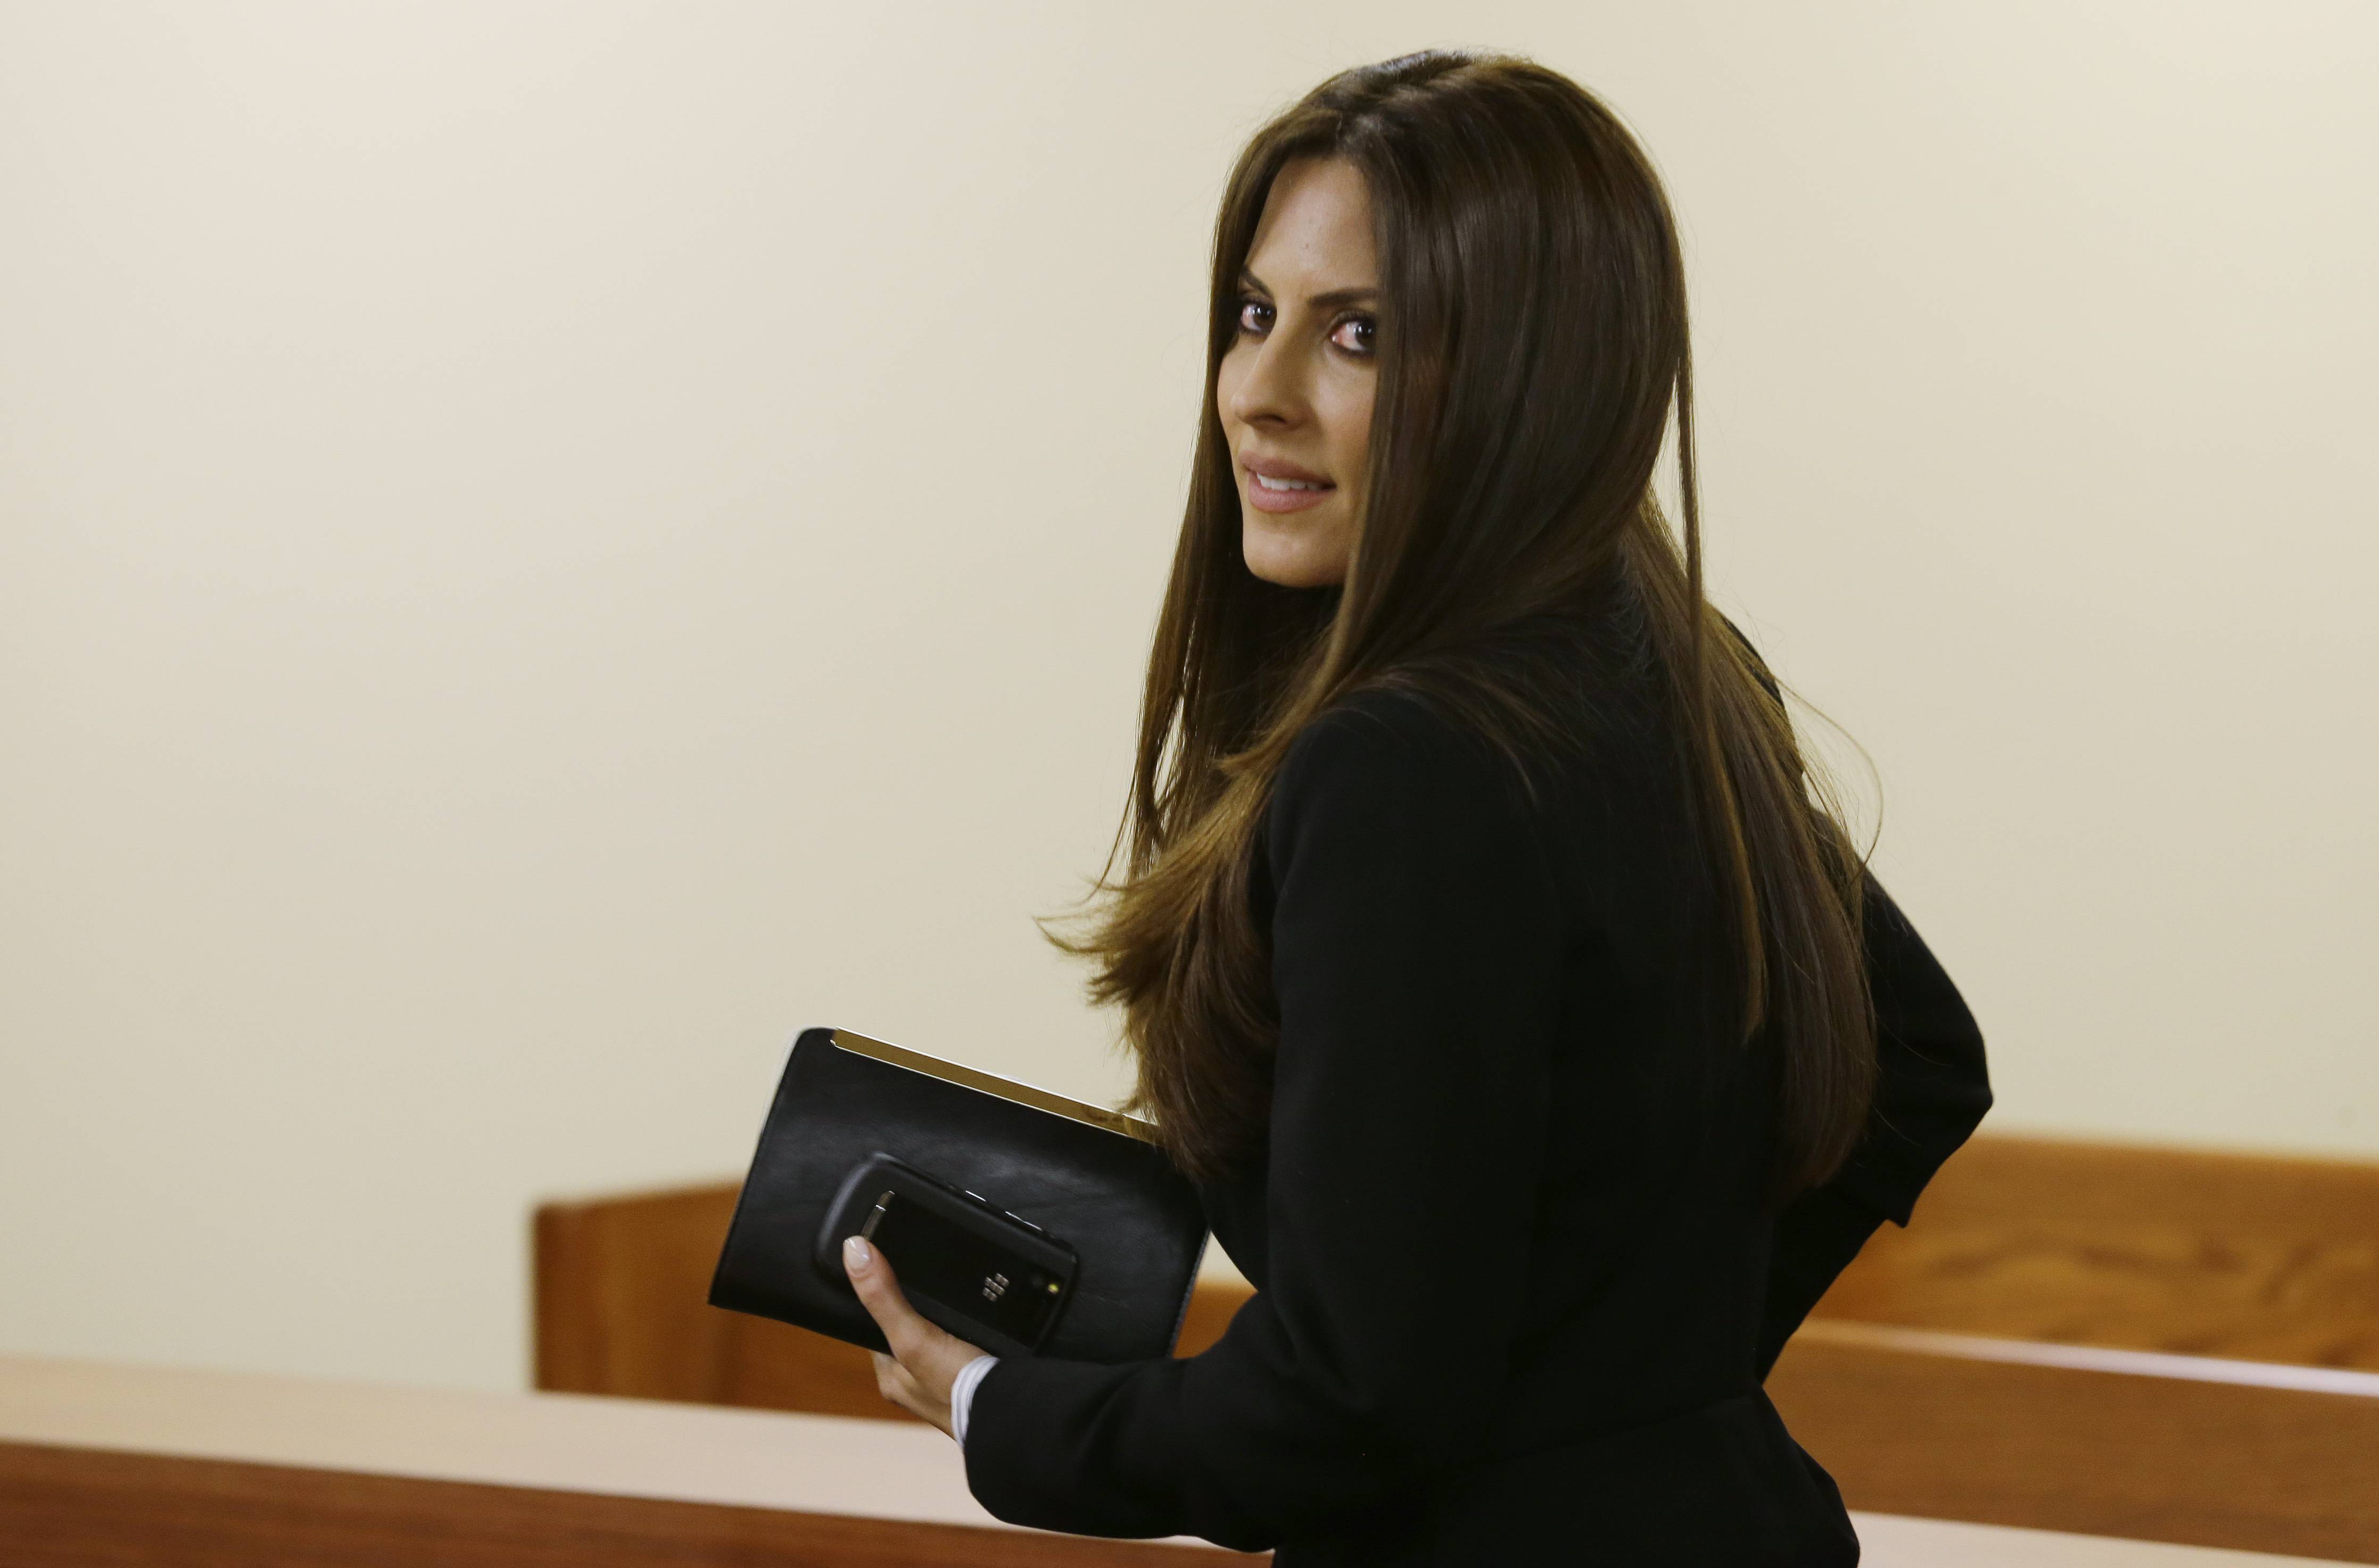 In this May 30 photo, Kerri Kasem, the daughter of ailing radio personality Casey Kasem, leaves Kitsap County Superior Court in Port Orchard, Wash. A judge in Washington state has granted Kasem's daughter a temporary restraining order preventing the famous radio host's wife, Jean Kasem, from cremating or removing his remains from a funeral home.